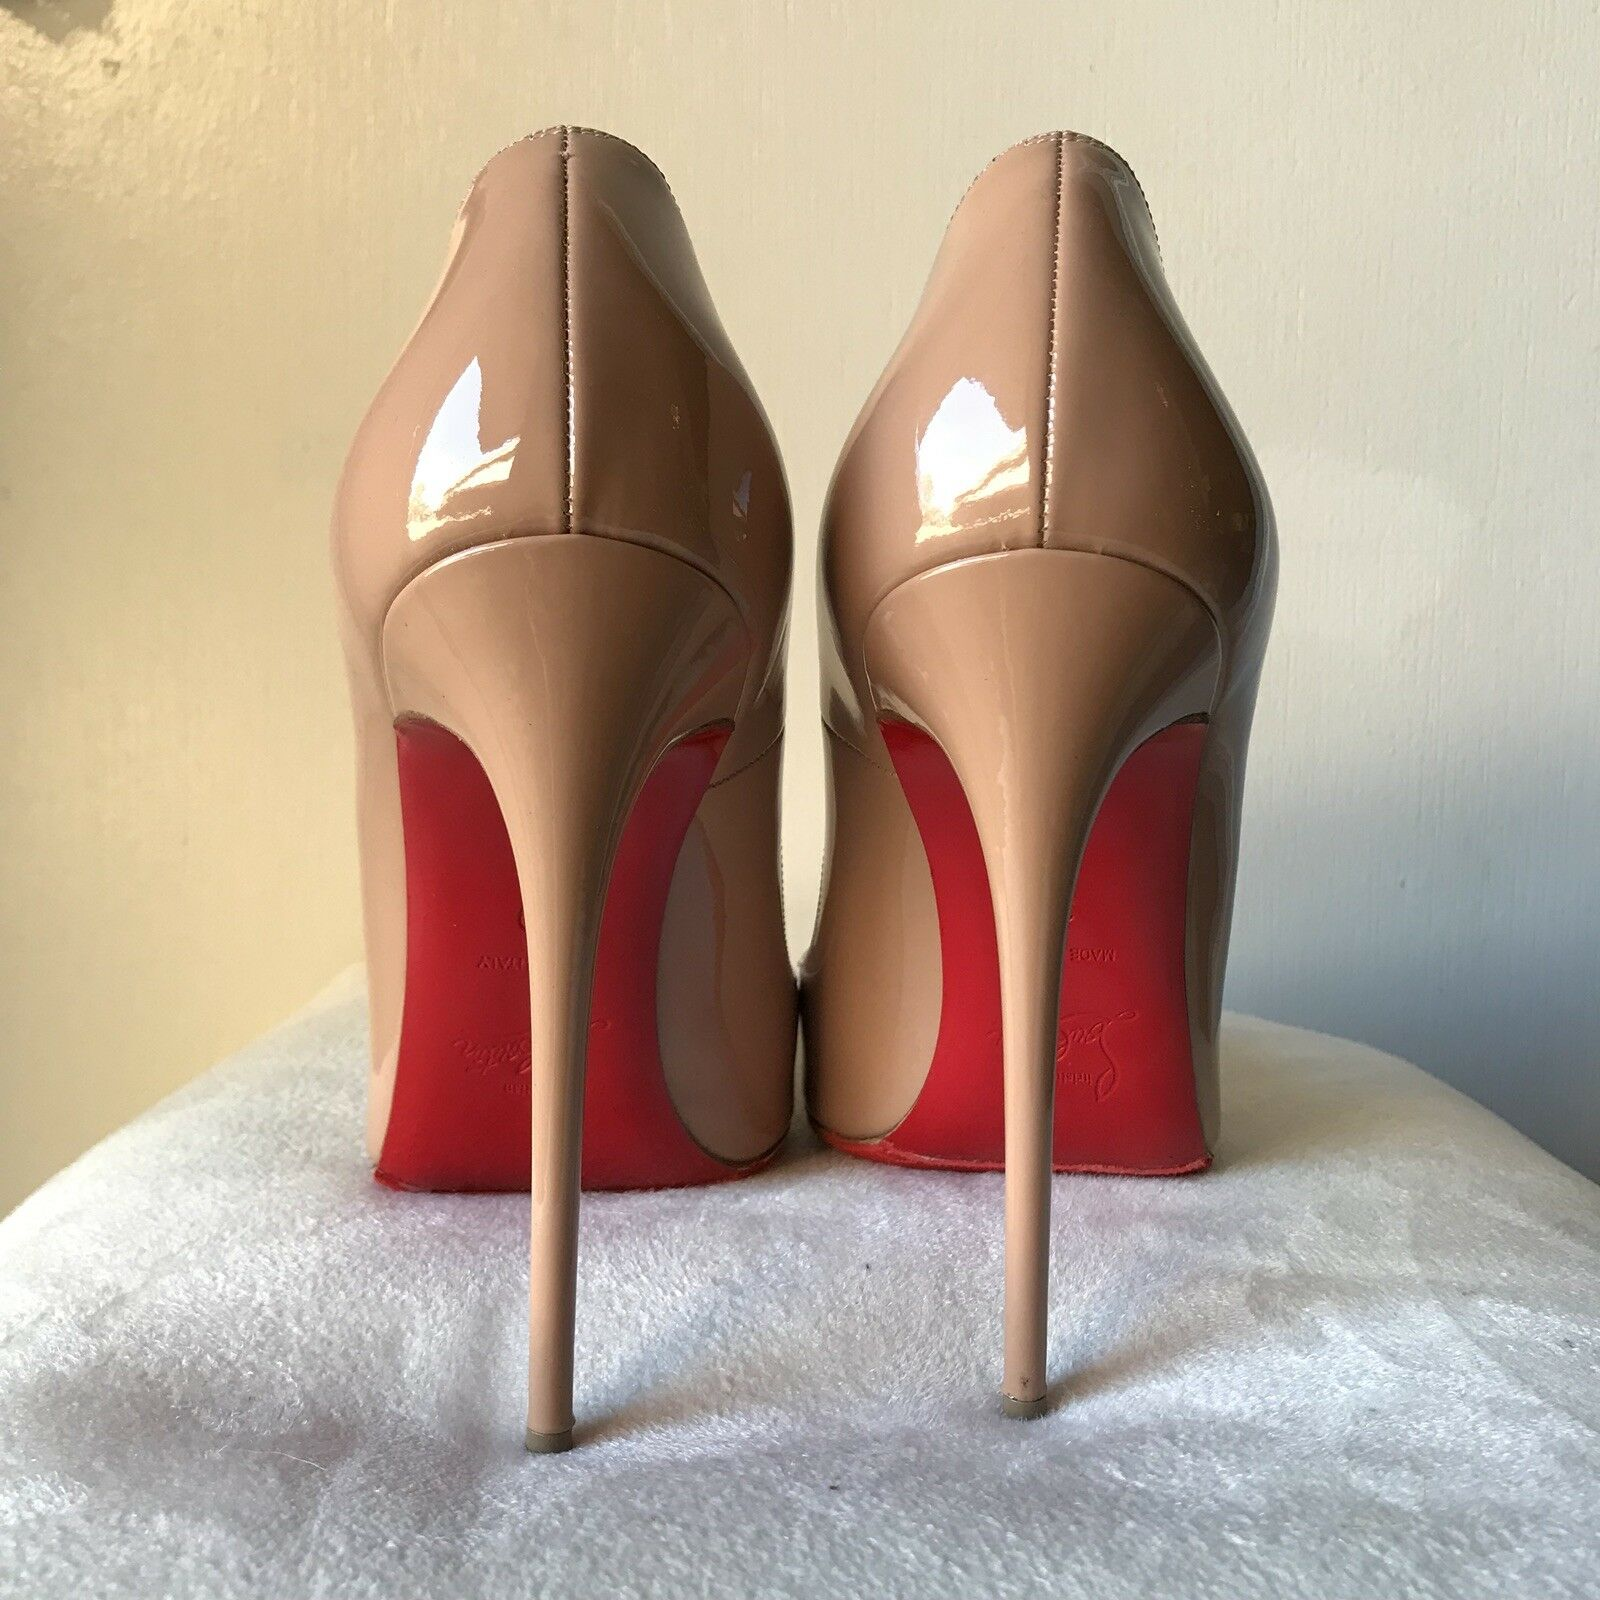 AUTH Louboutin So Kate 39 Nude Patent Patent Patent Gorgeous 4ede9c